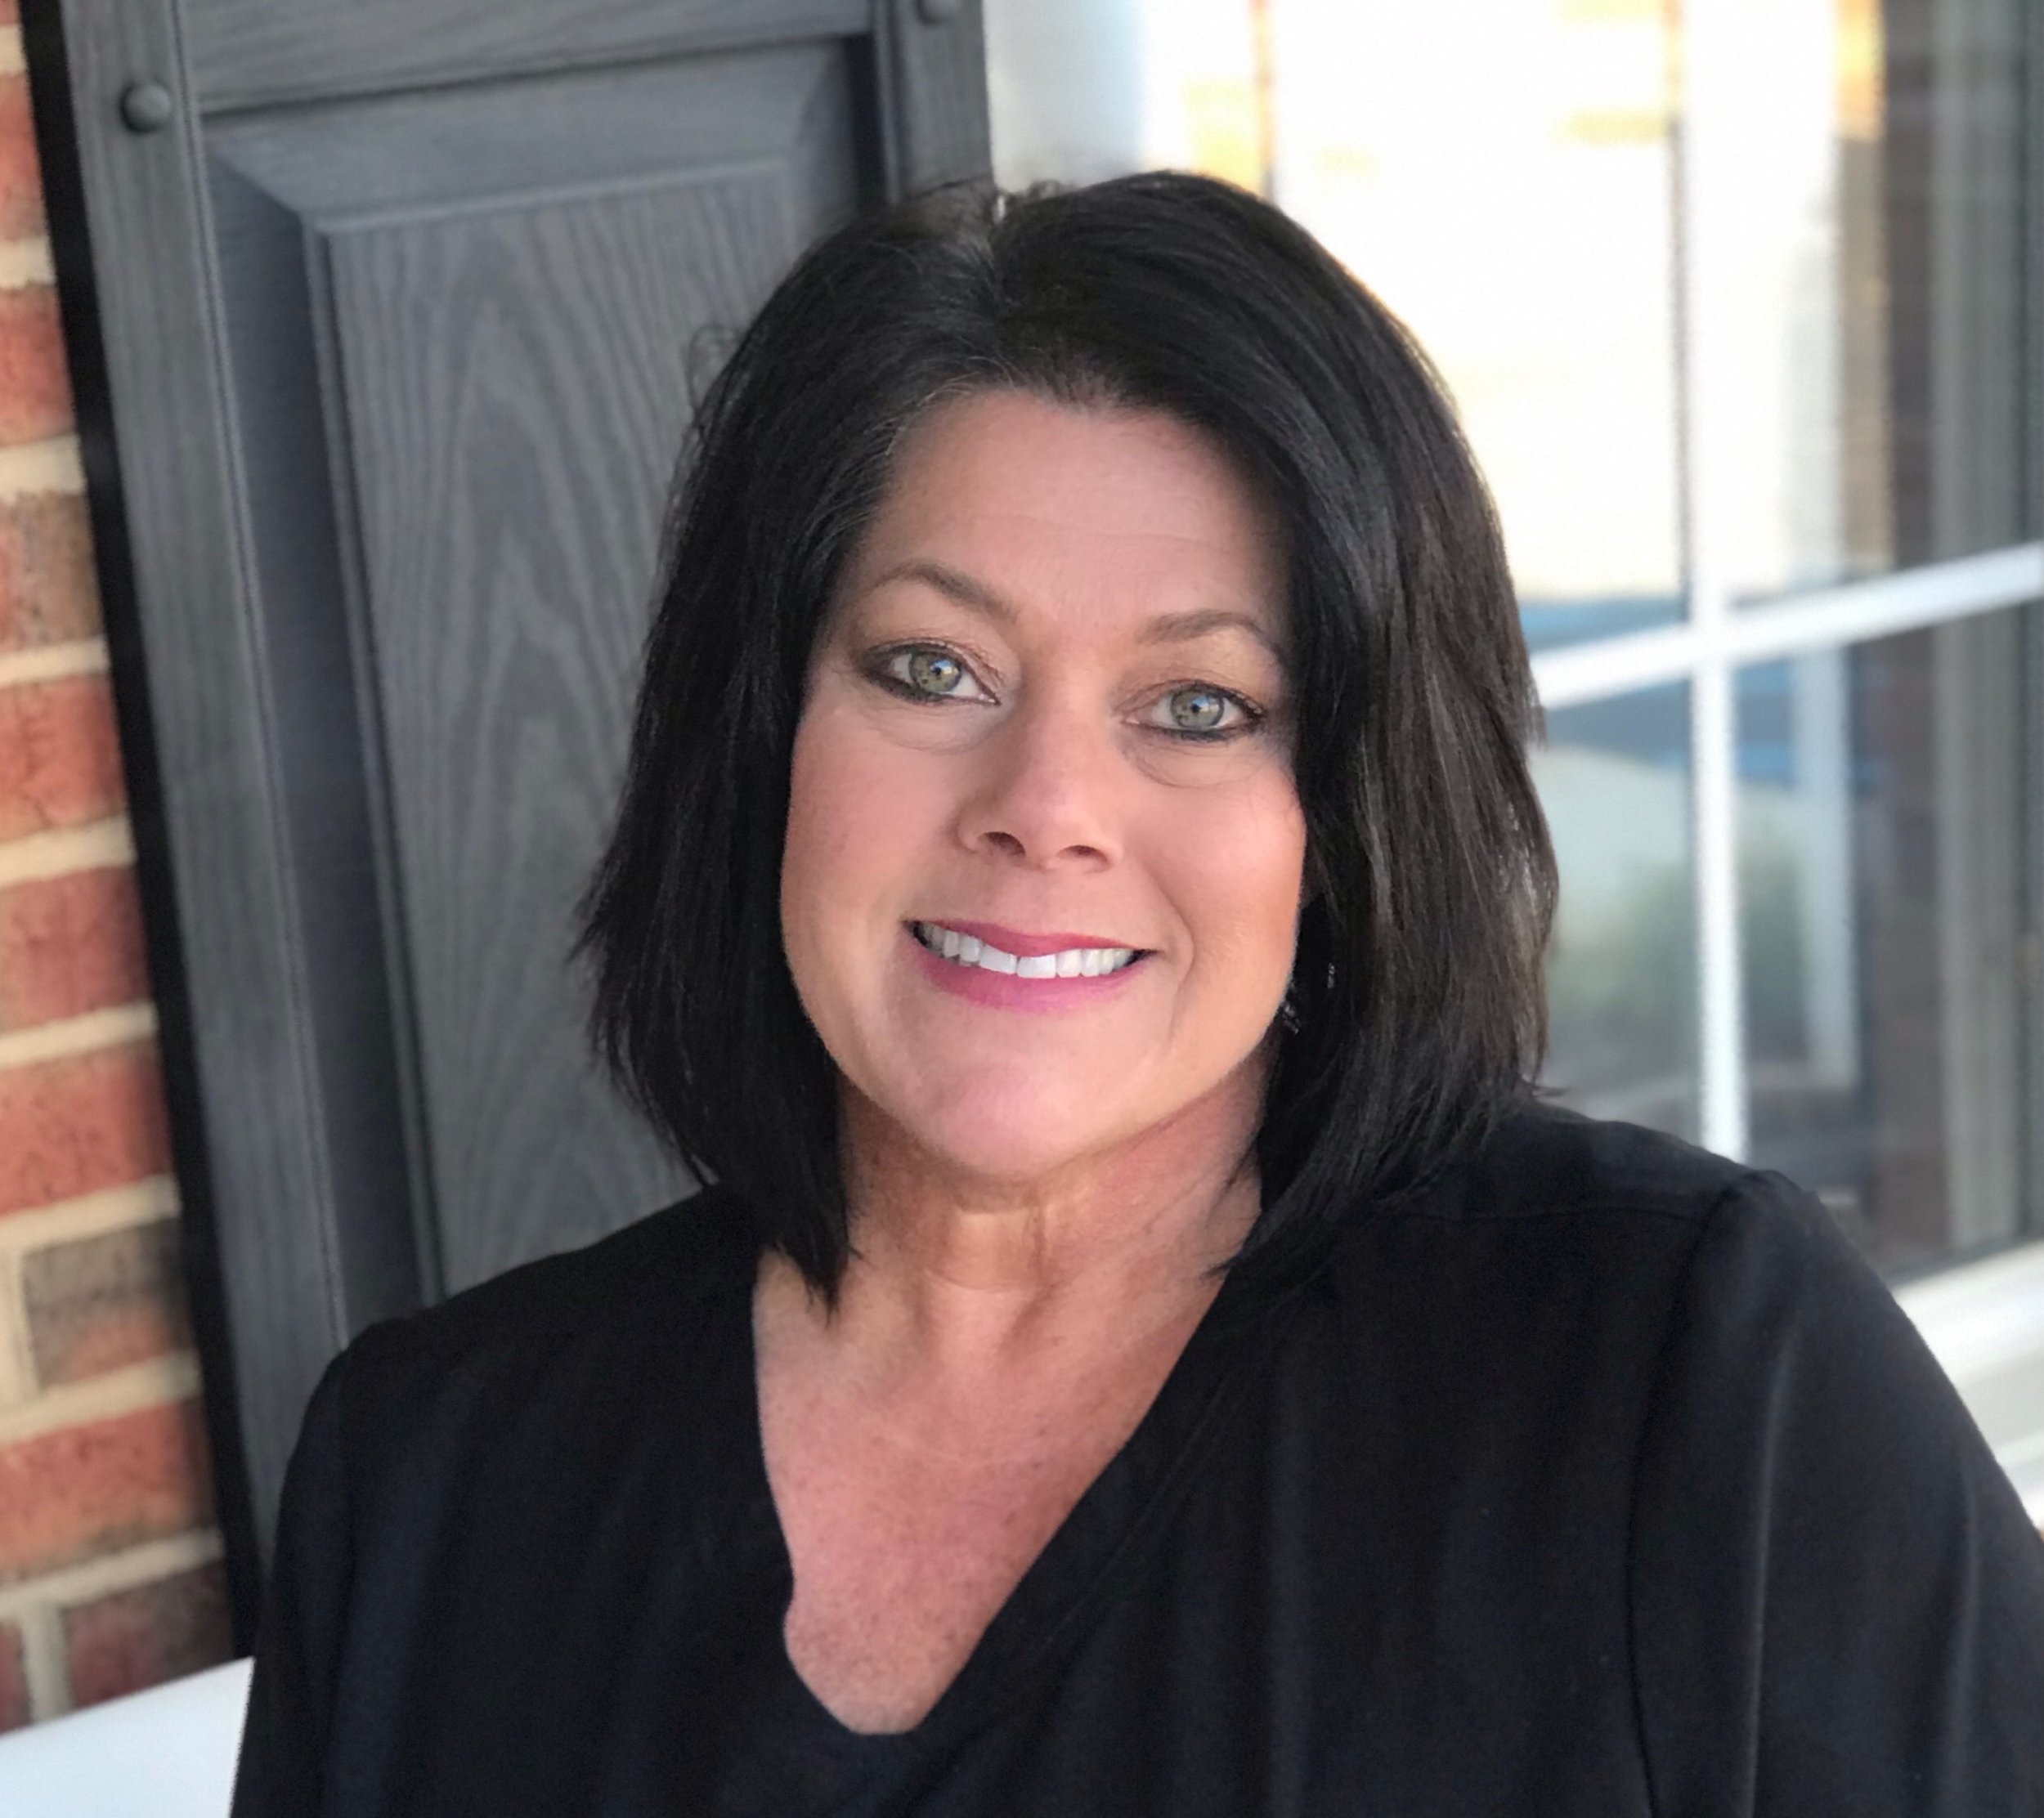 Rhonda Waddell - Rhonda Waddell has been the office manager at Tyger River Family Dentistry since 1999. She has over 30 years of dental and front office experience. She enjoys spending time with her family and friends.